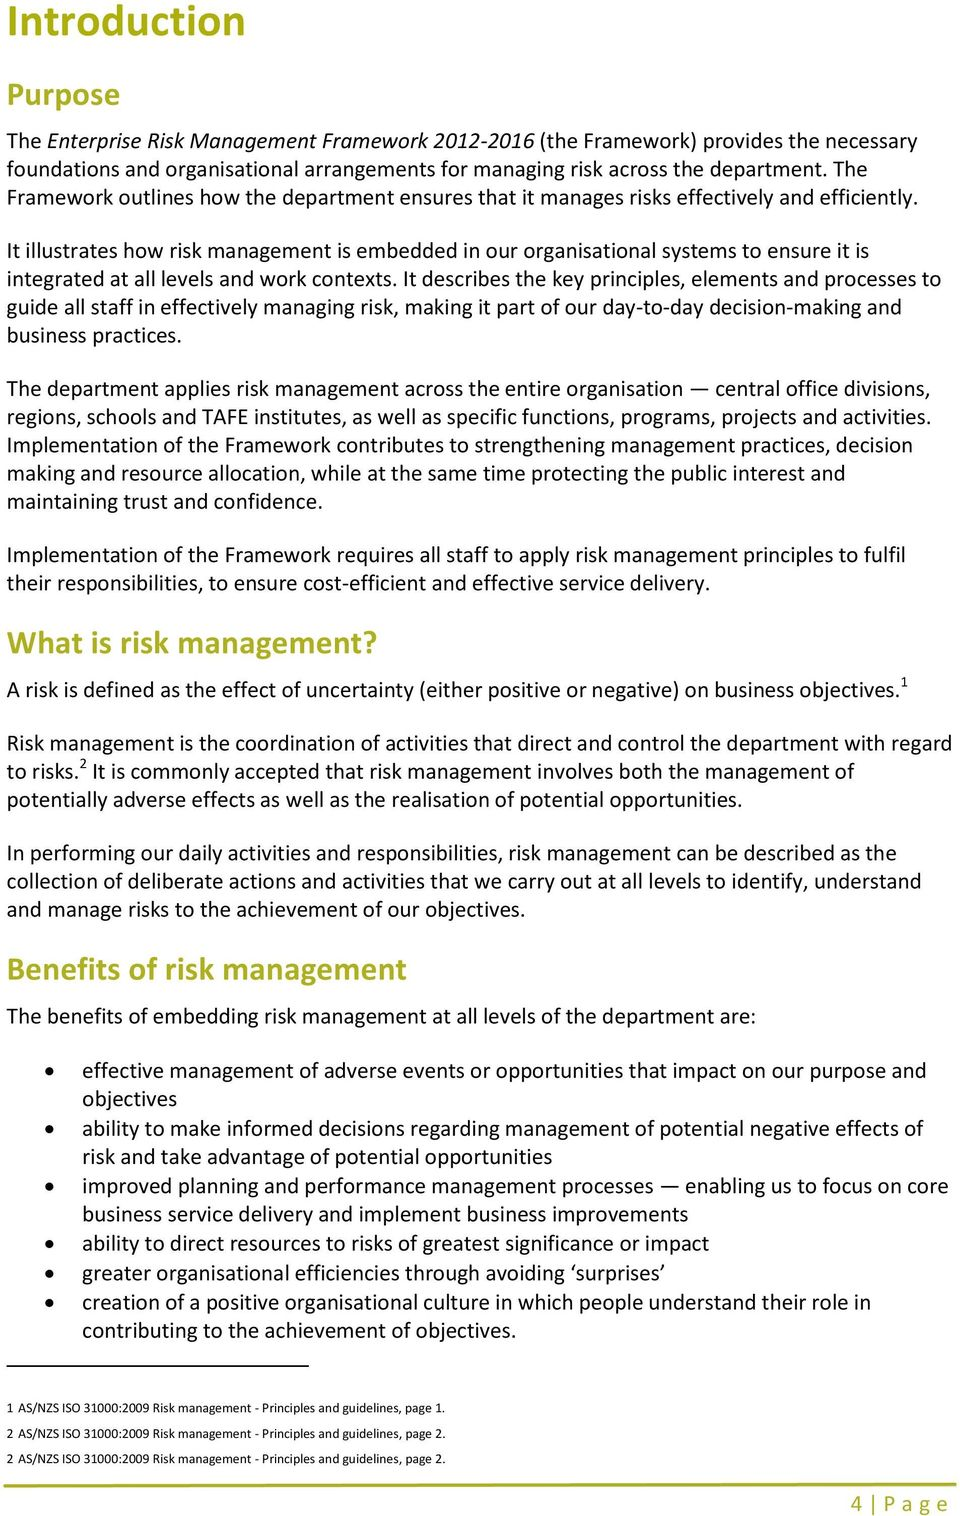 It illustrates how risk management is embedded in our organisational systems to ensure it is integrated at all levels and work contexts.